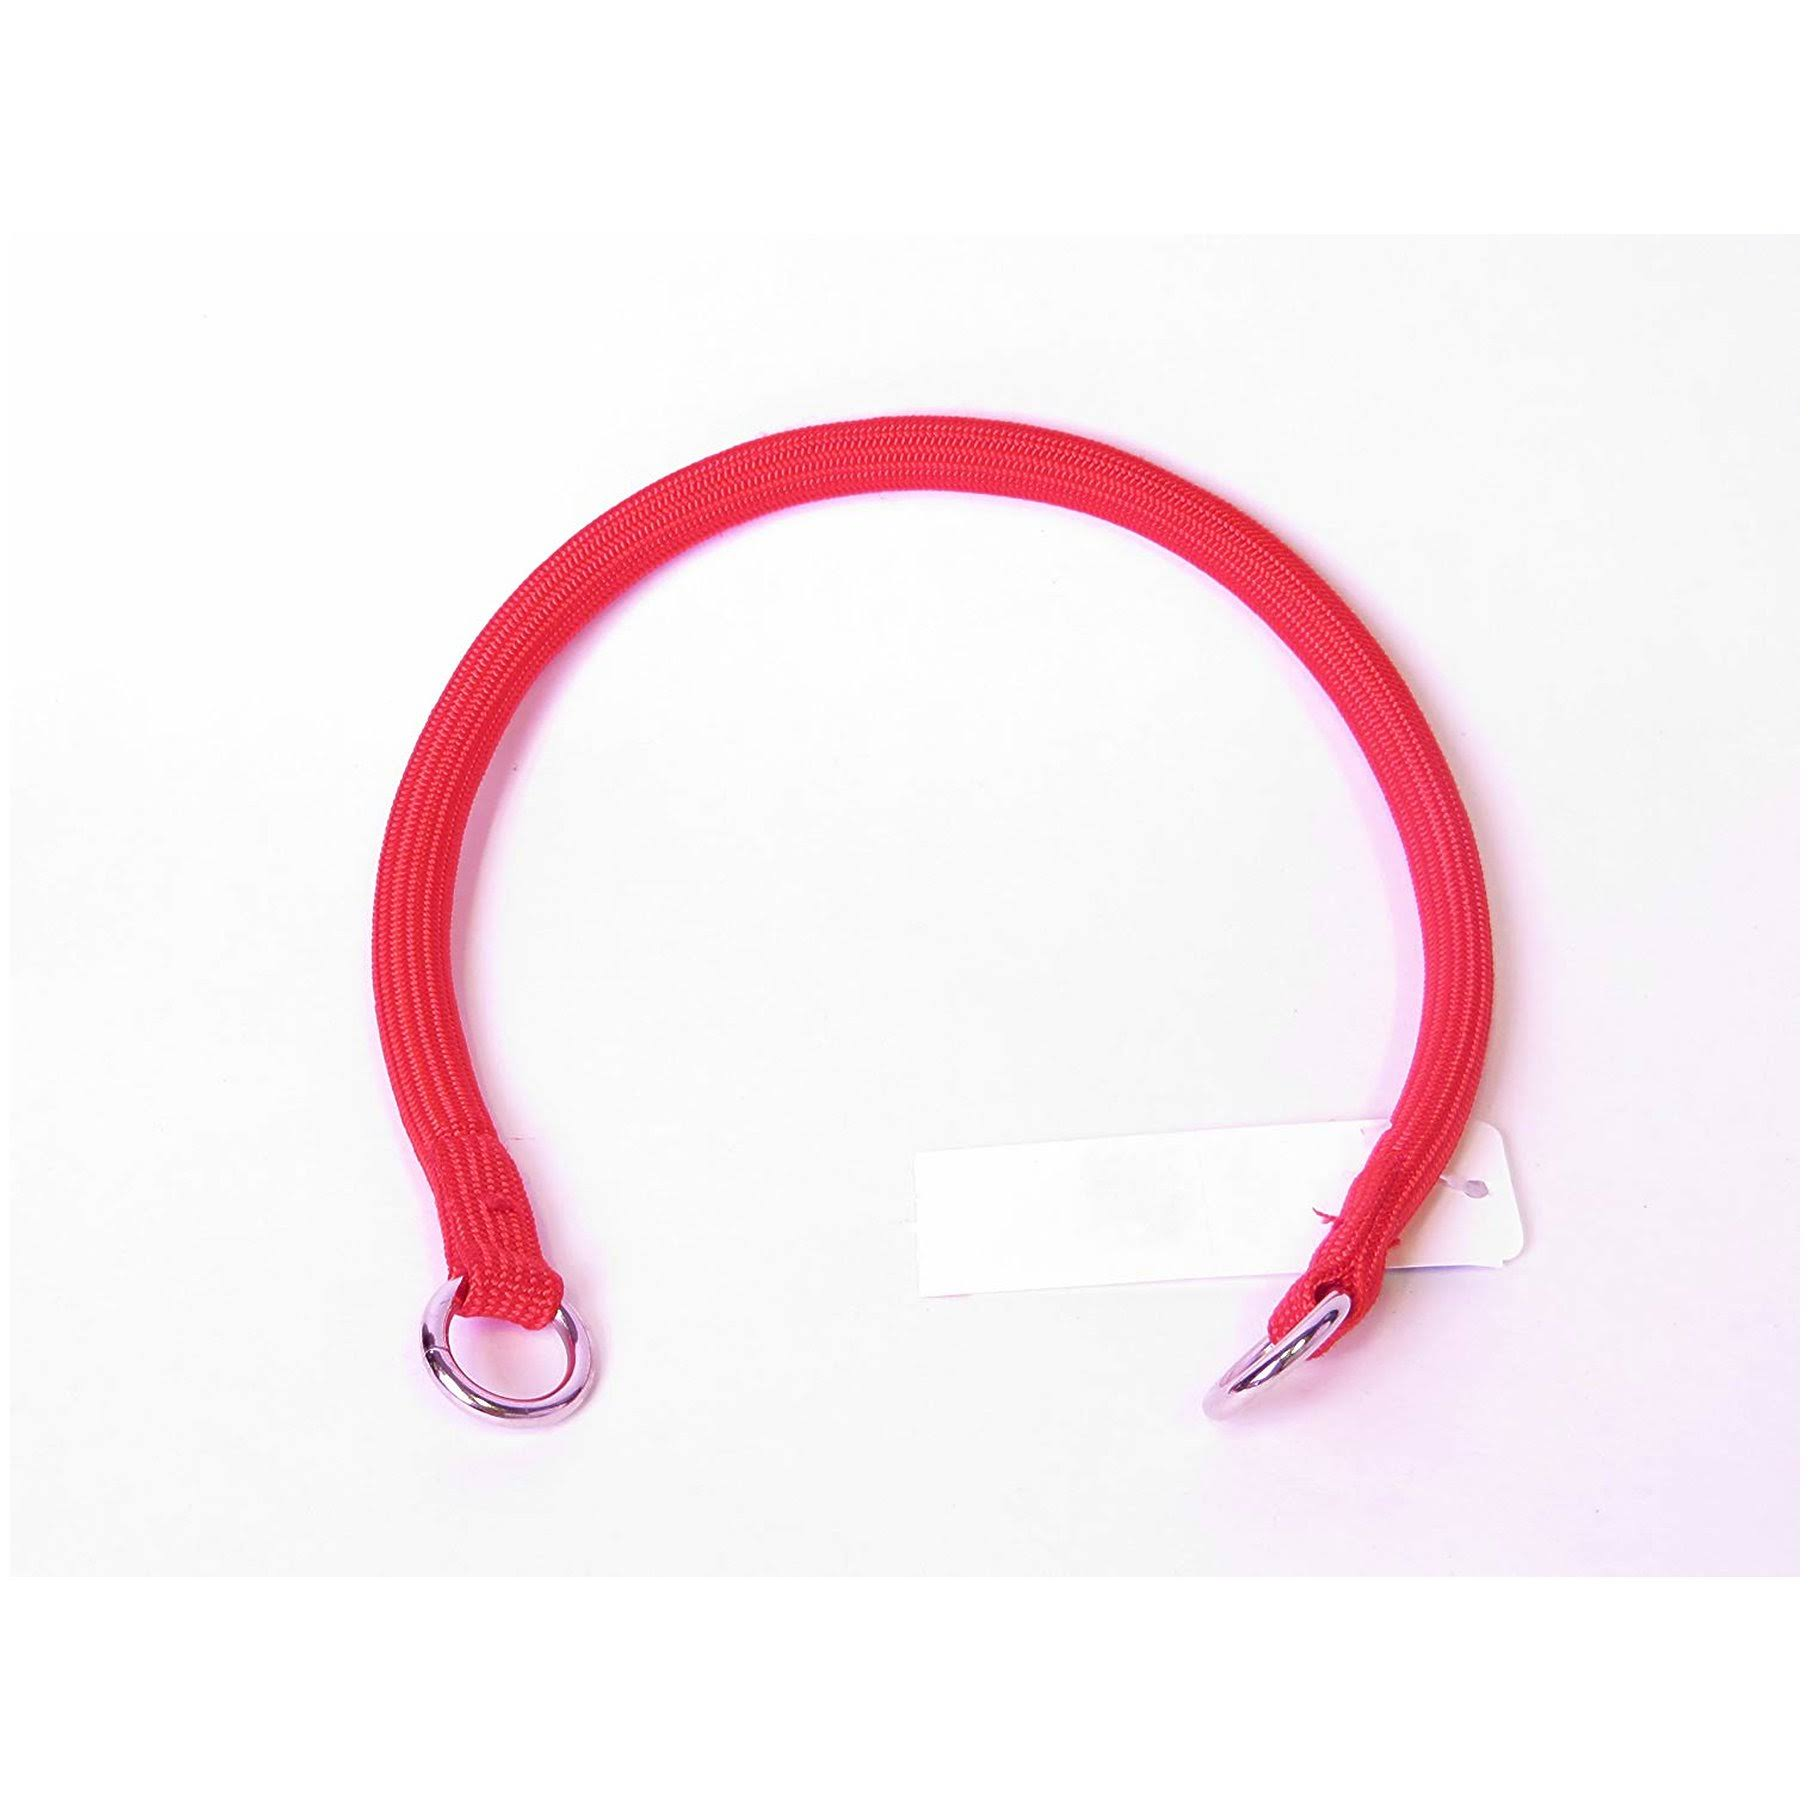 "Coastal Pet Products Round Nylon Choke Dog Collar - Red, 3/8"" x 20"""